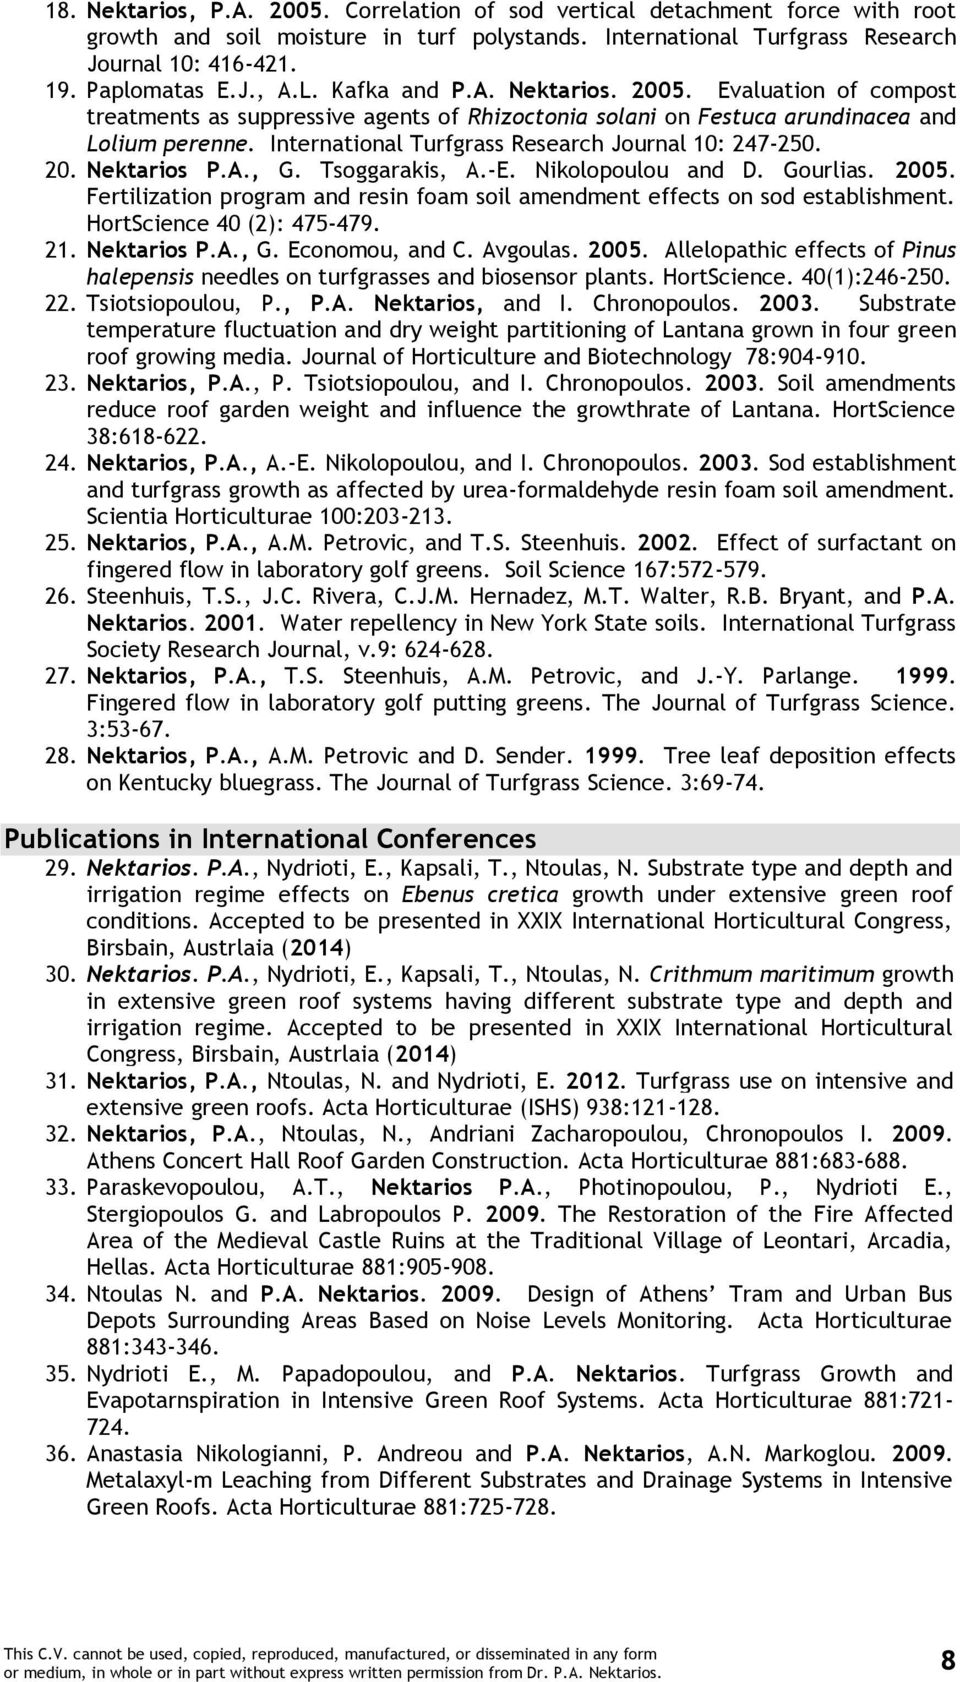 International Turfgrass Research Journal 10: 247-250. 20. Nektarios P.A., G. Tsoggarakis, A.-E. Nikolopoulou and D. Gourlias. 2005.